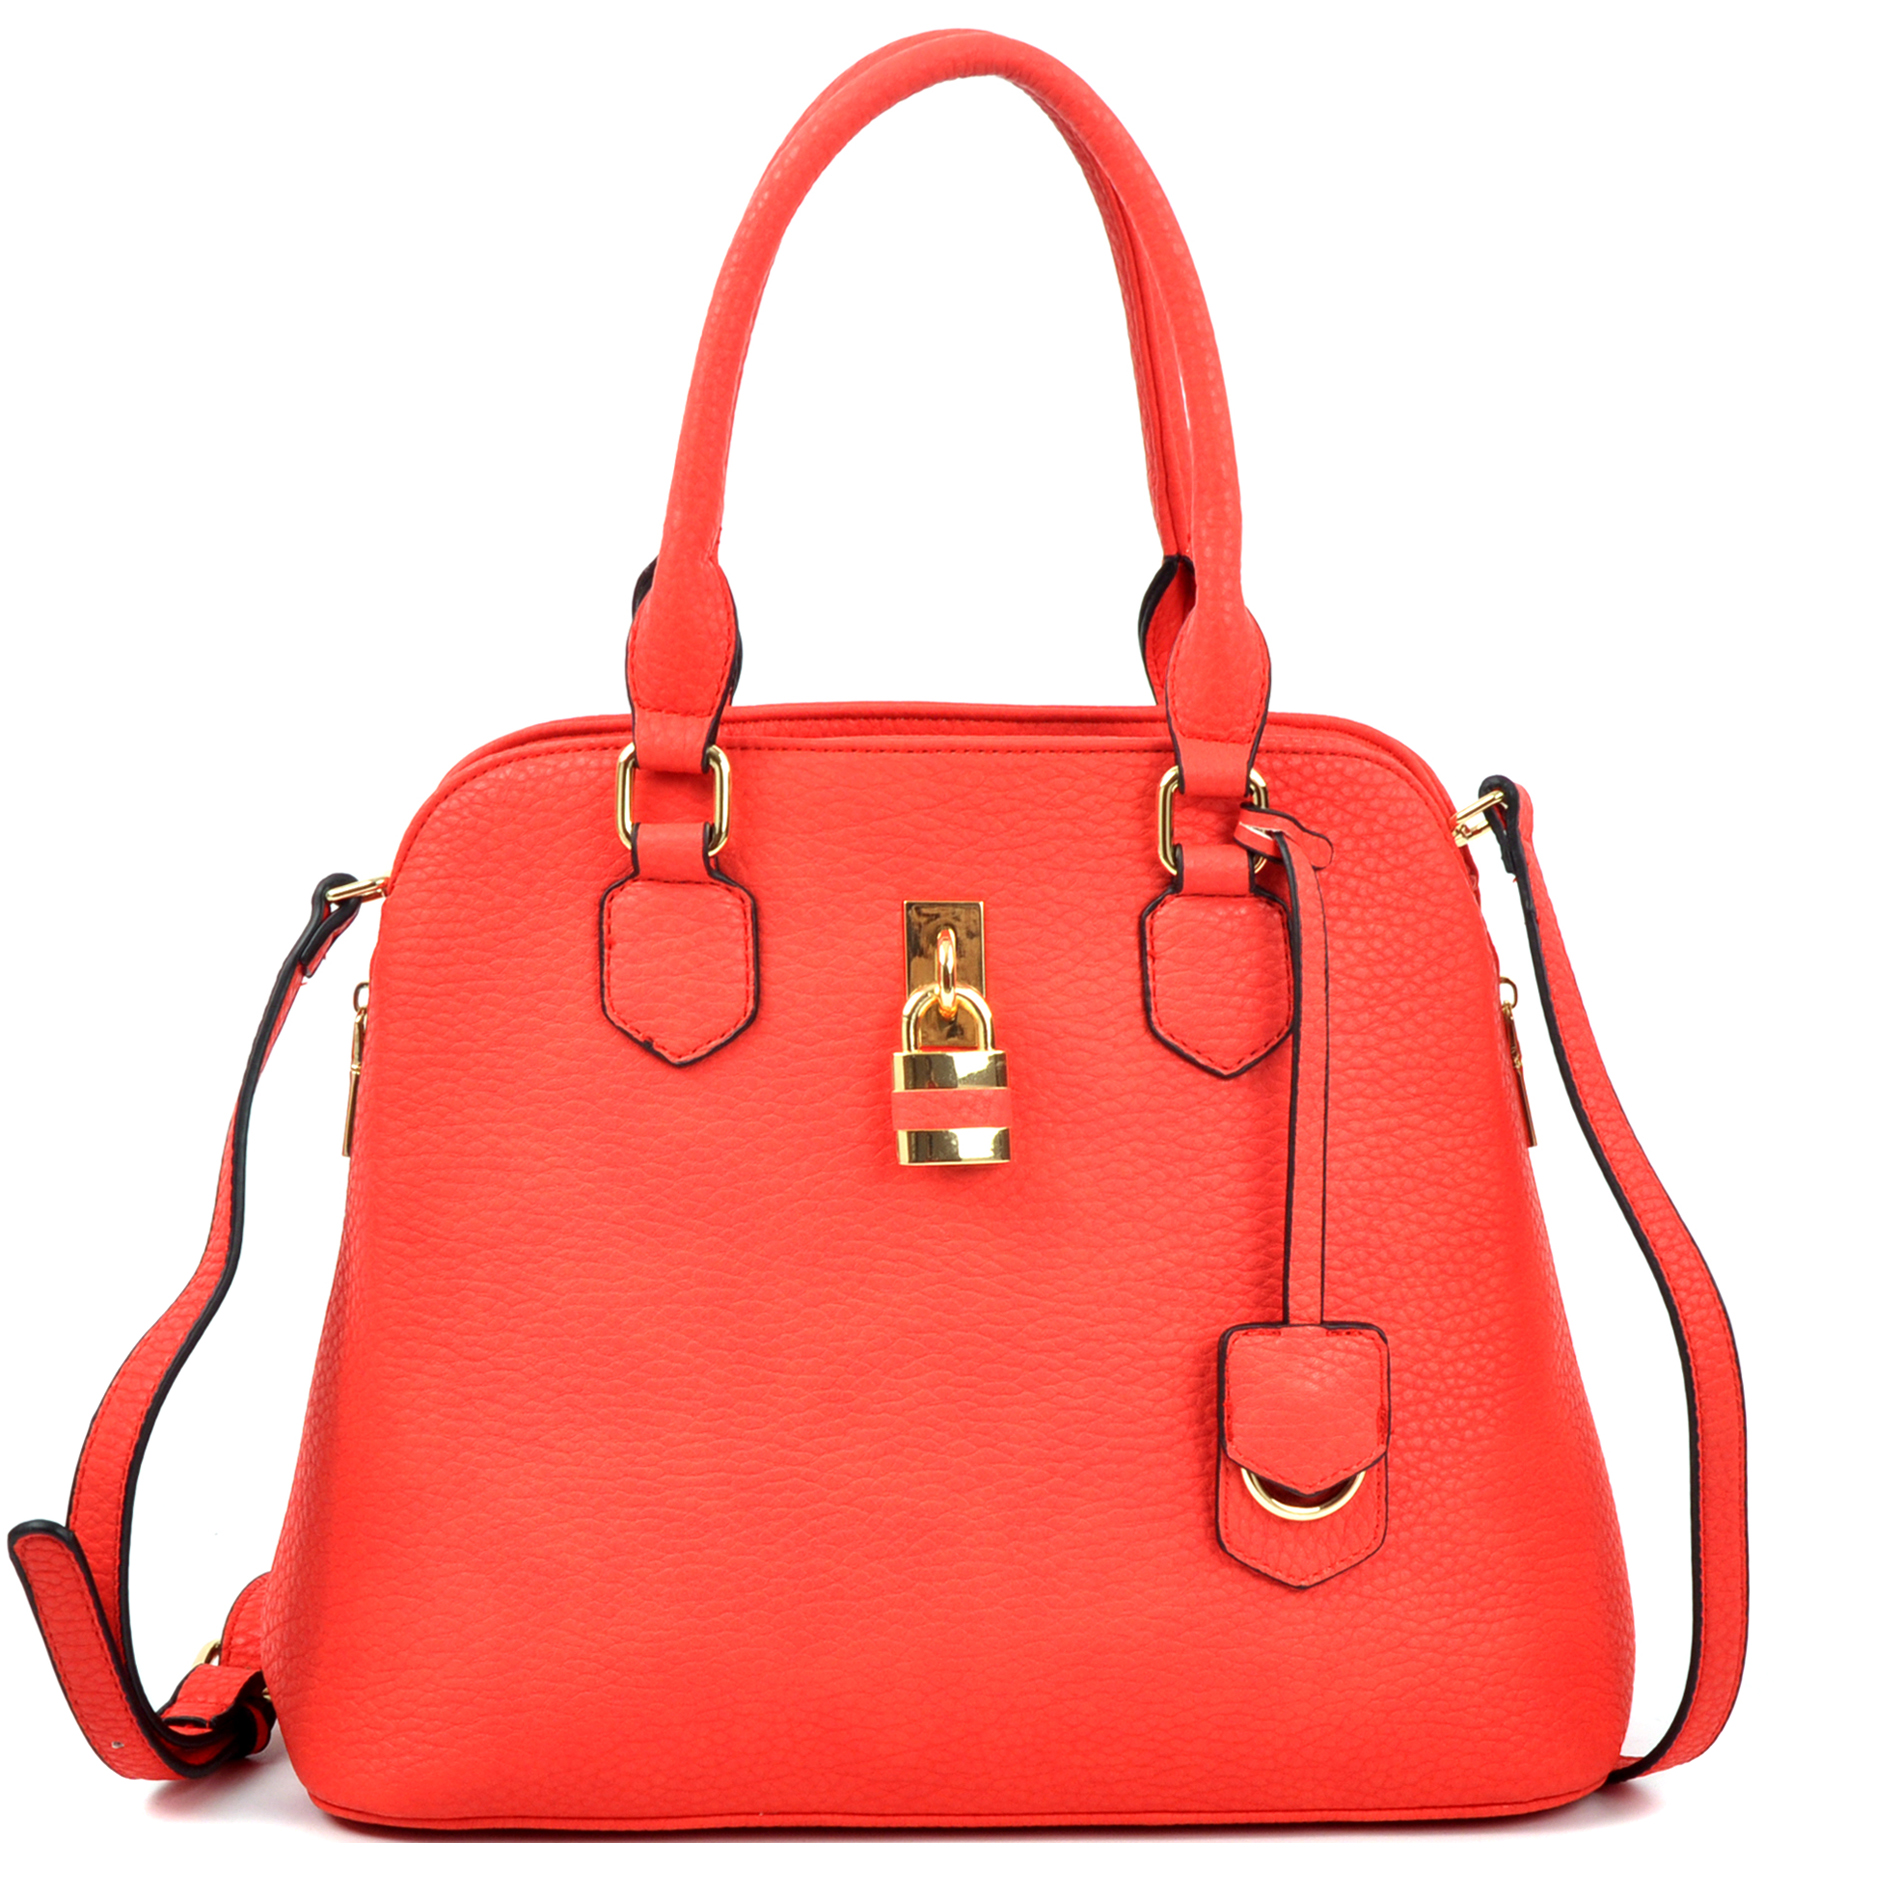 Round Padlock Zip Satchel with Shoulder Strap